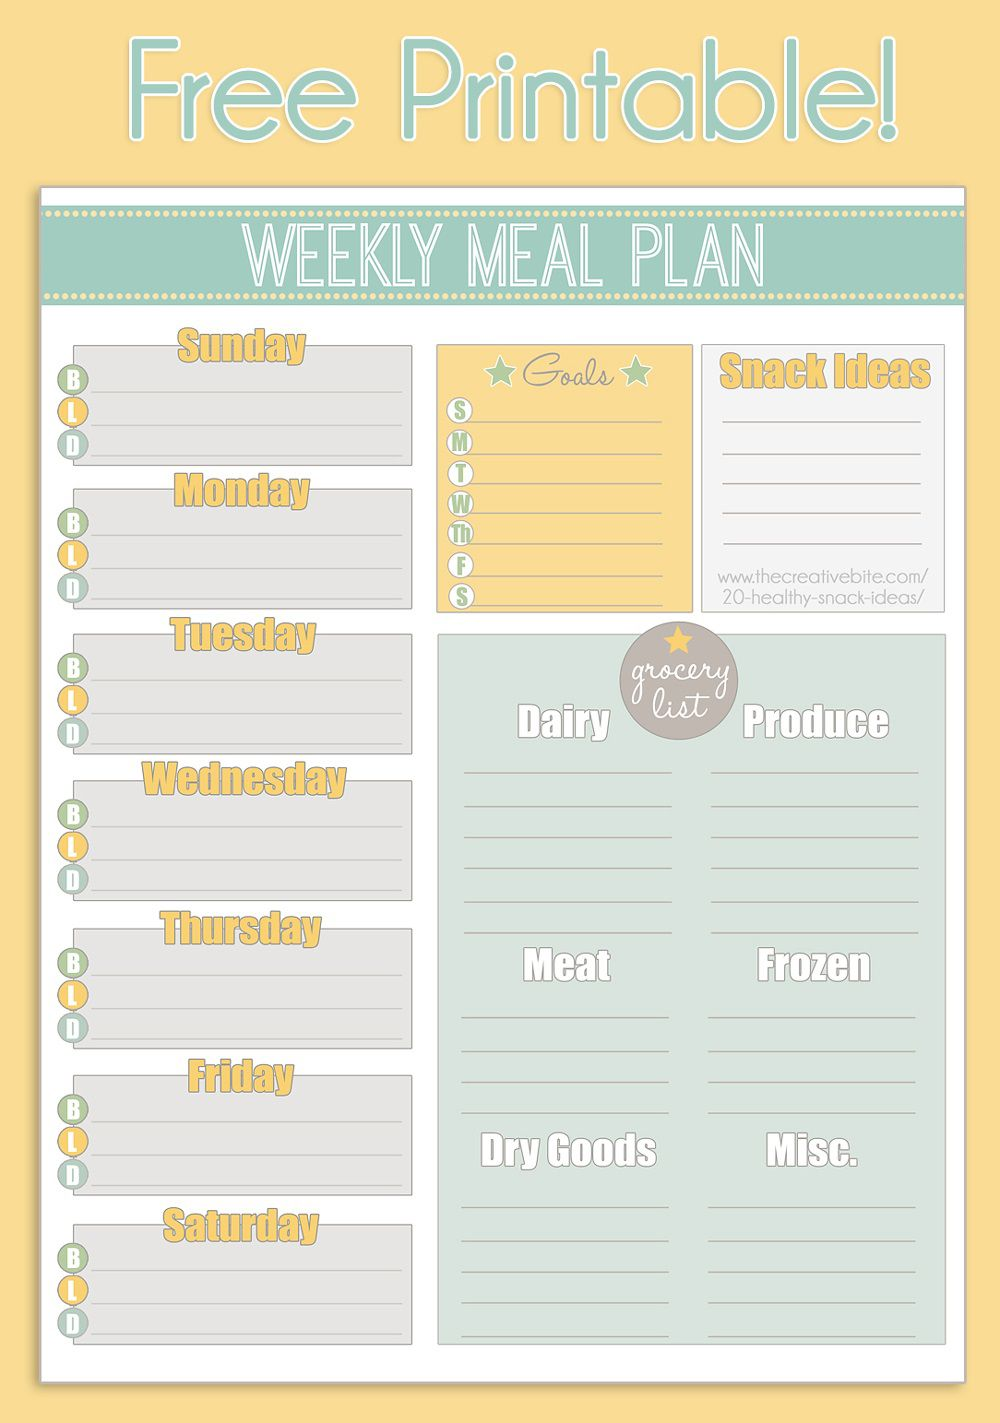 004 Archaicawful Meal Plan With Printable Grocery List Photo  Planning Template Excel FreeFull